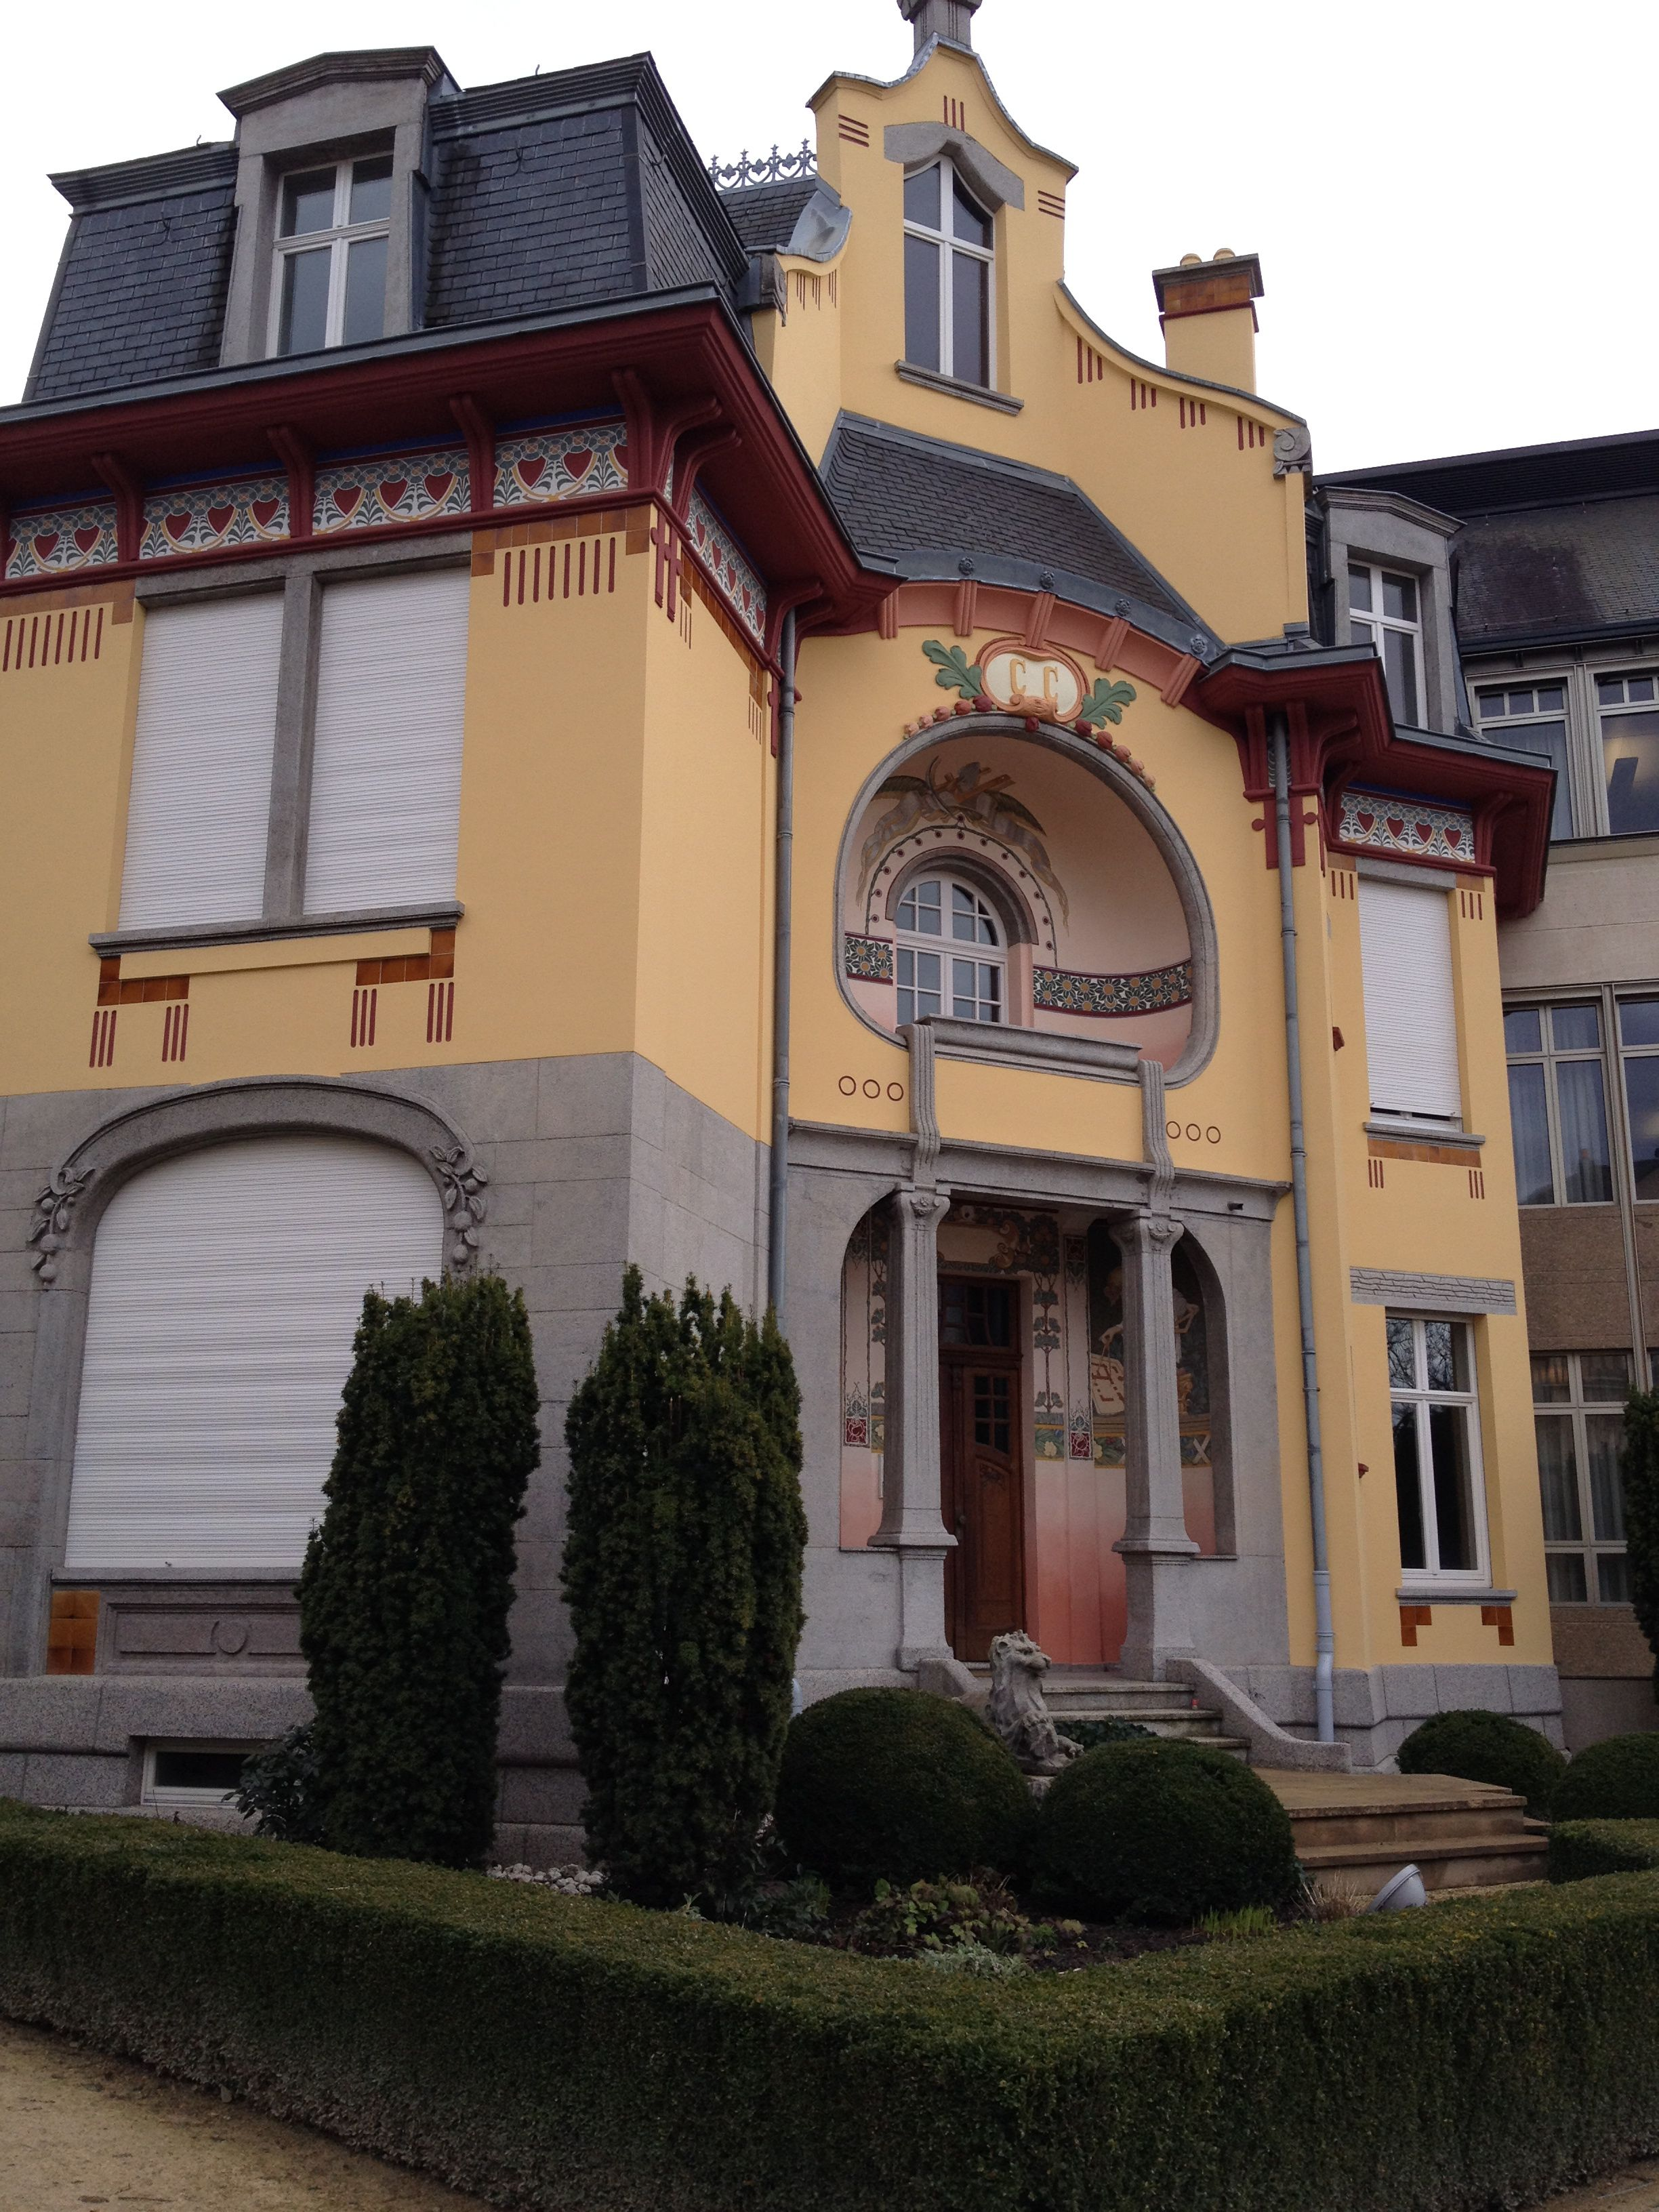 Smal Art Deco House In Luxembourg City, Luxembourg.